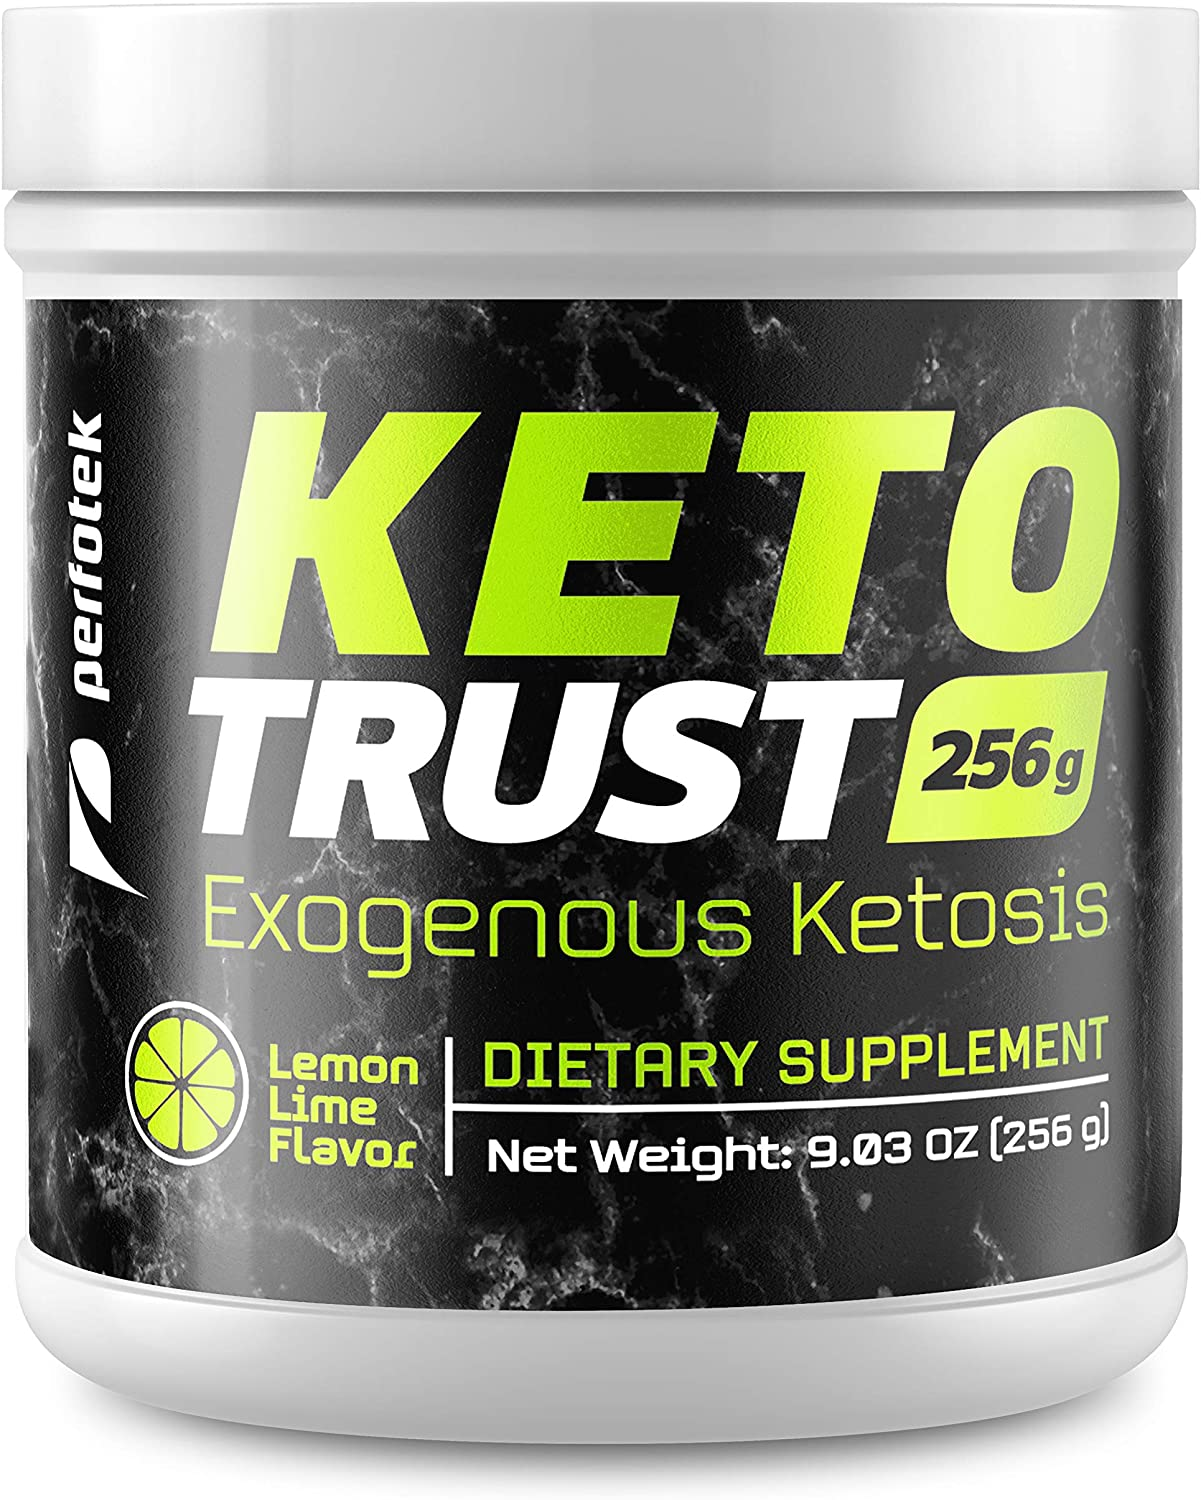 Perfotek Keto Powder – Instant Ketosis – Exogenous Ketones Weight Loss Supplements with BHB and Electrolytes for Ketogenic Diet – Lemon Lime